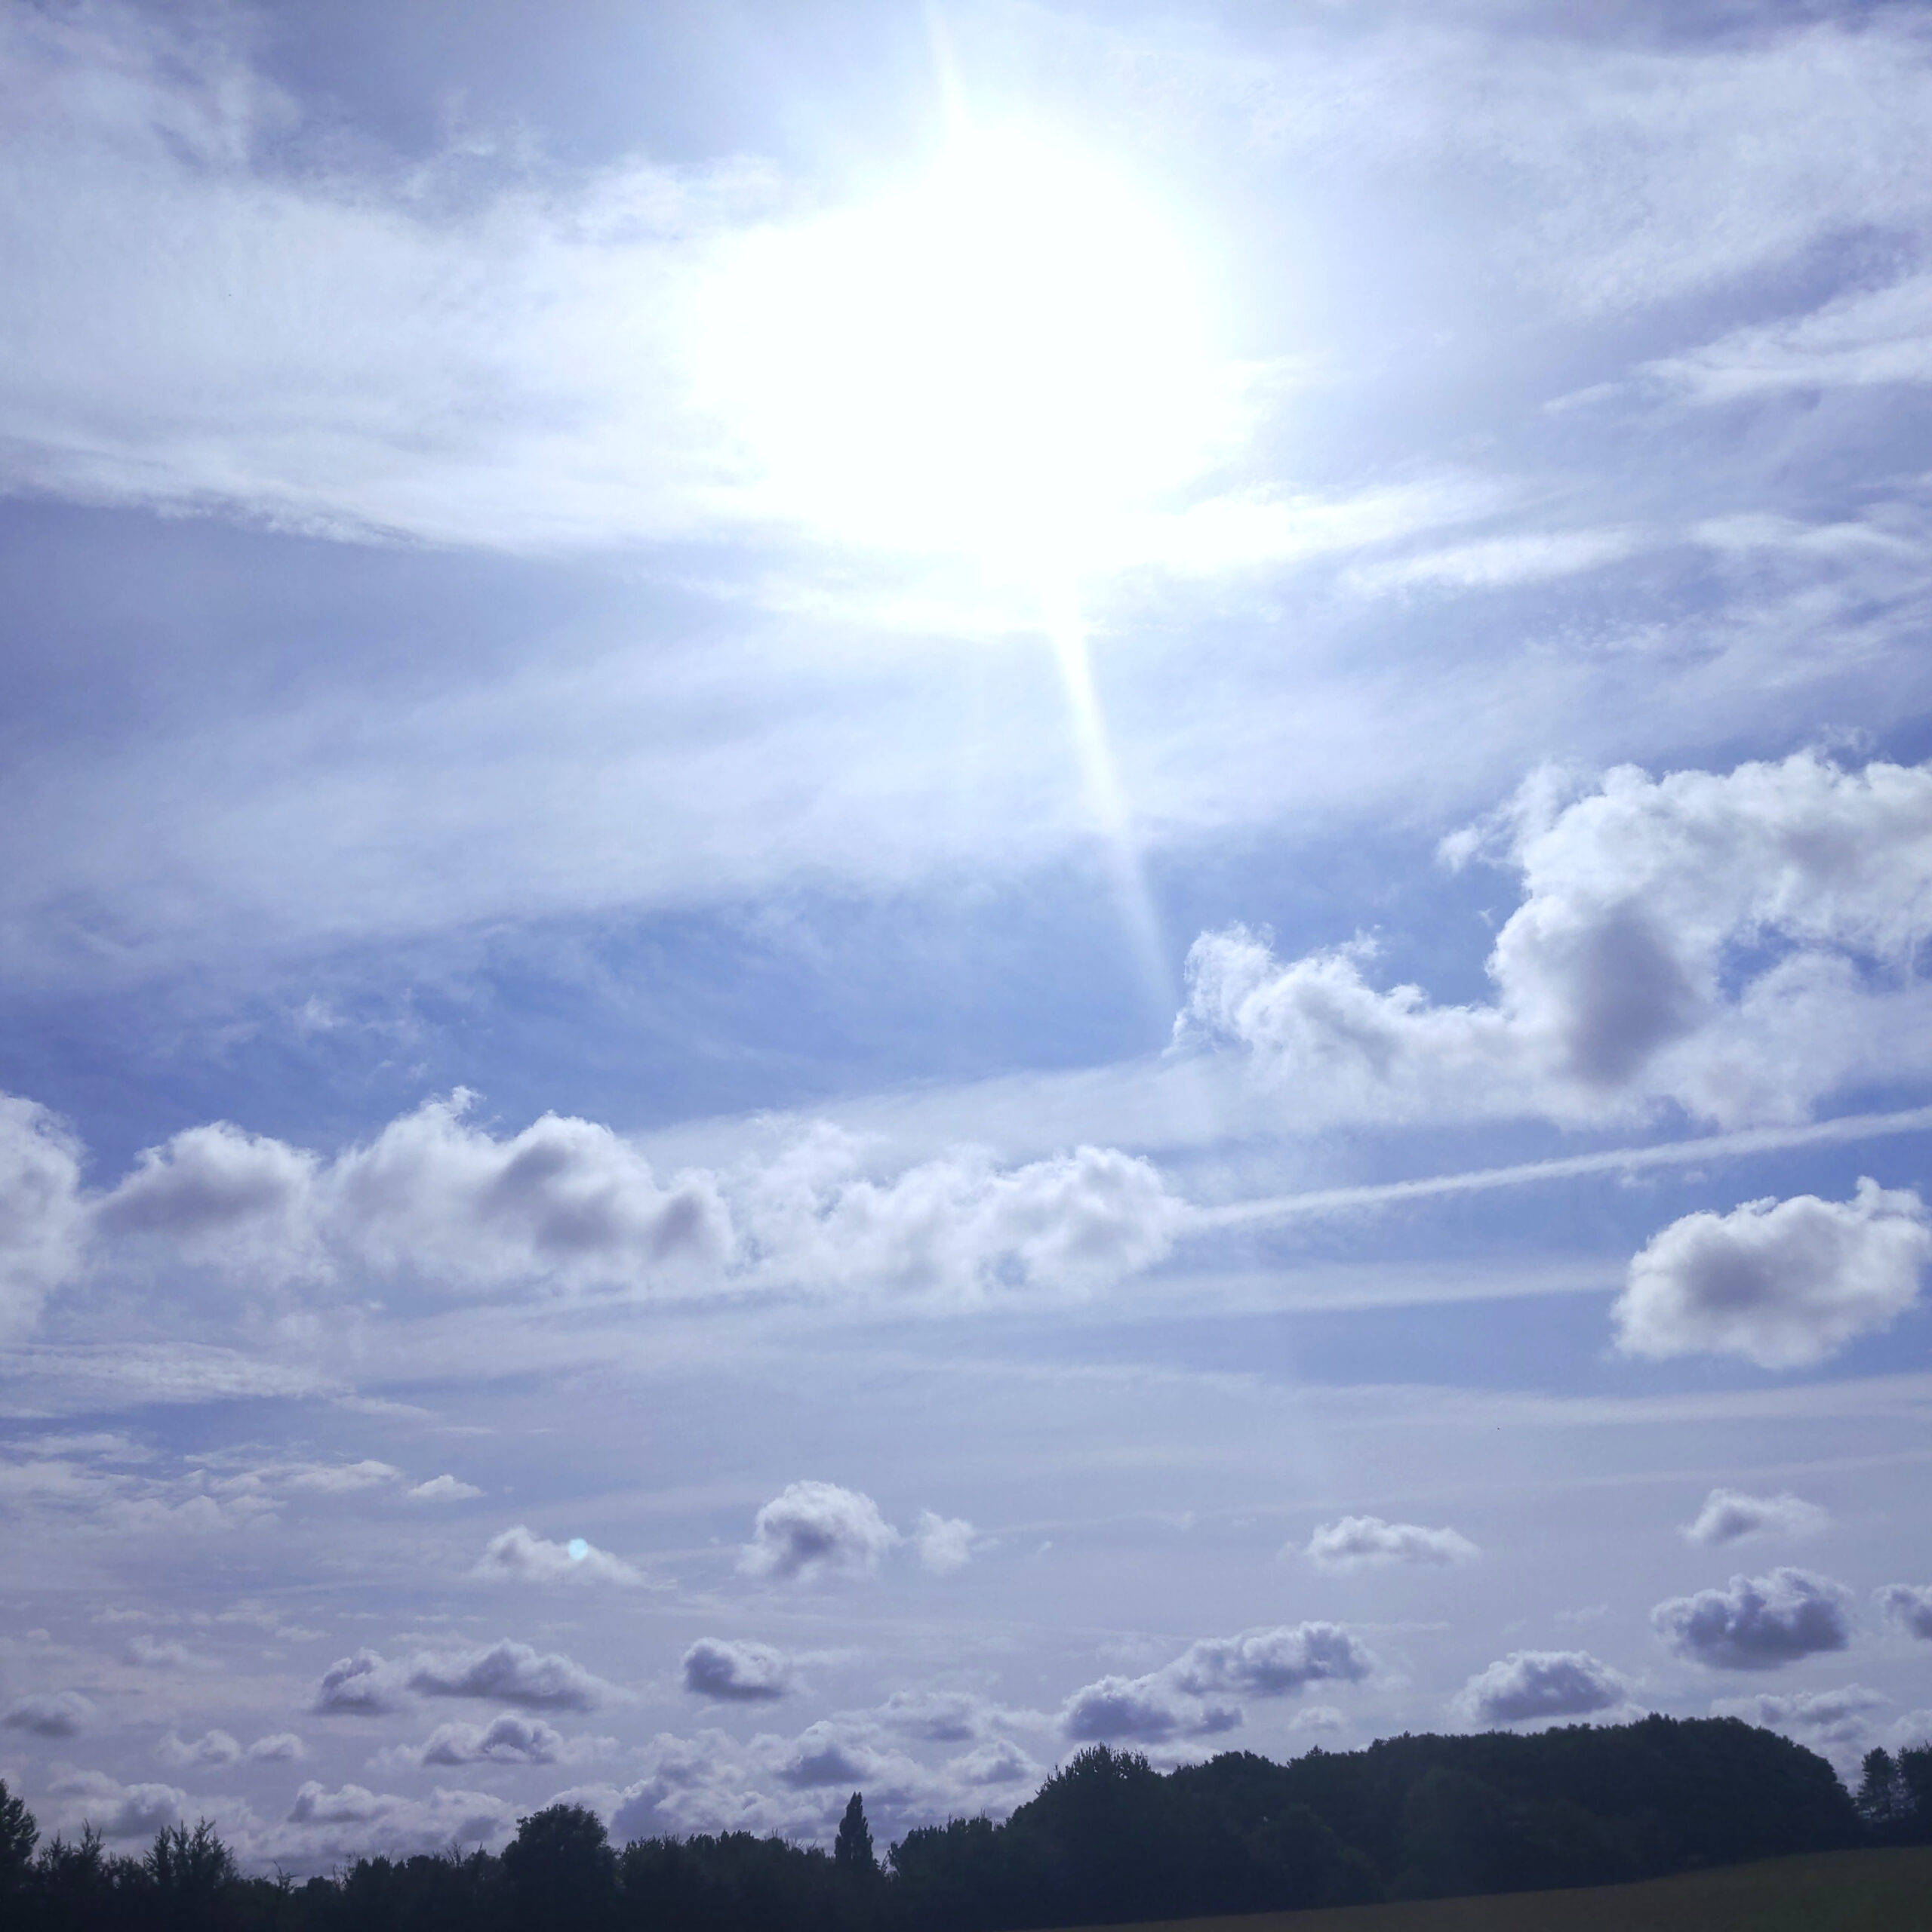 An intense picture of a summer sky. The sun and the clouds lie hazy across the majority of the photo.